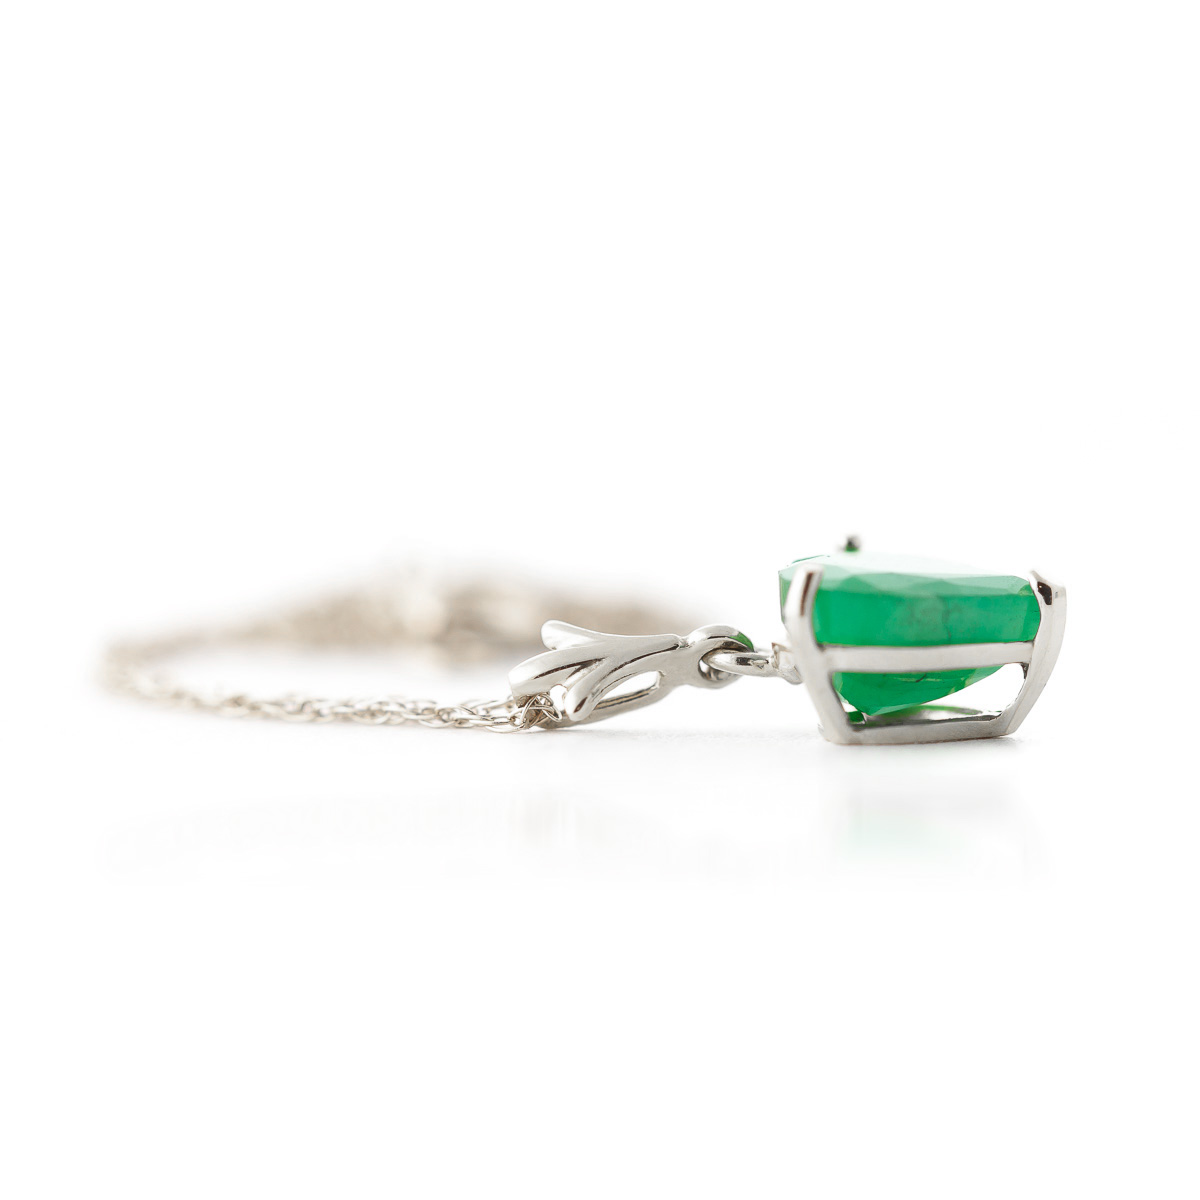 Emerald Heart Pendant Necklace 1.2ct in 14K White Gold